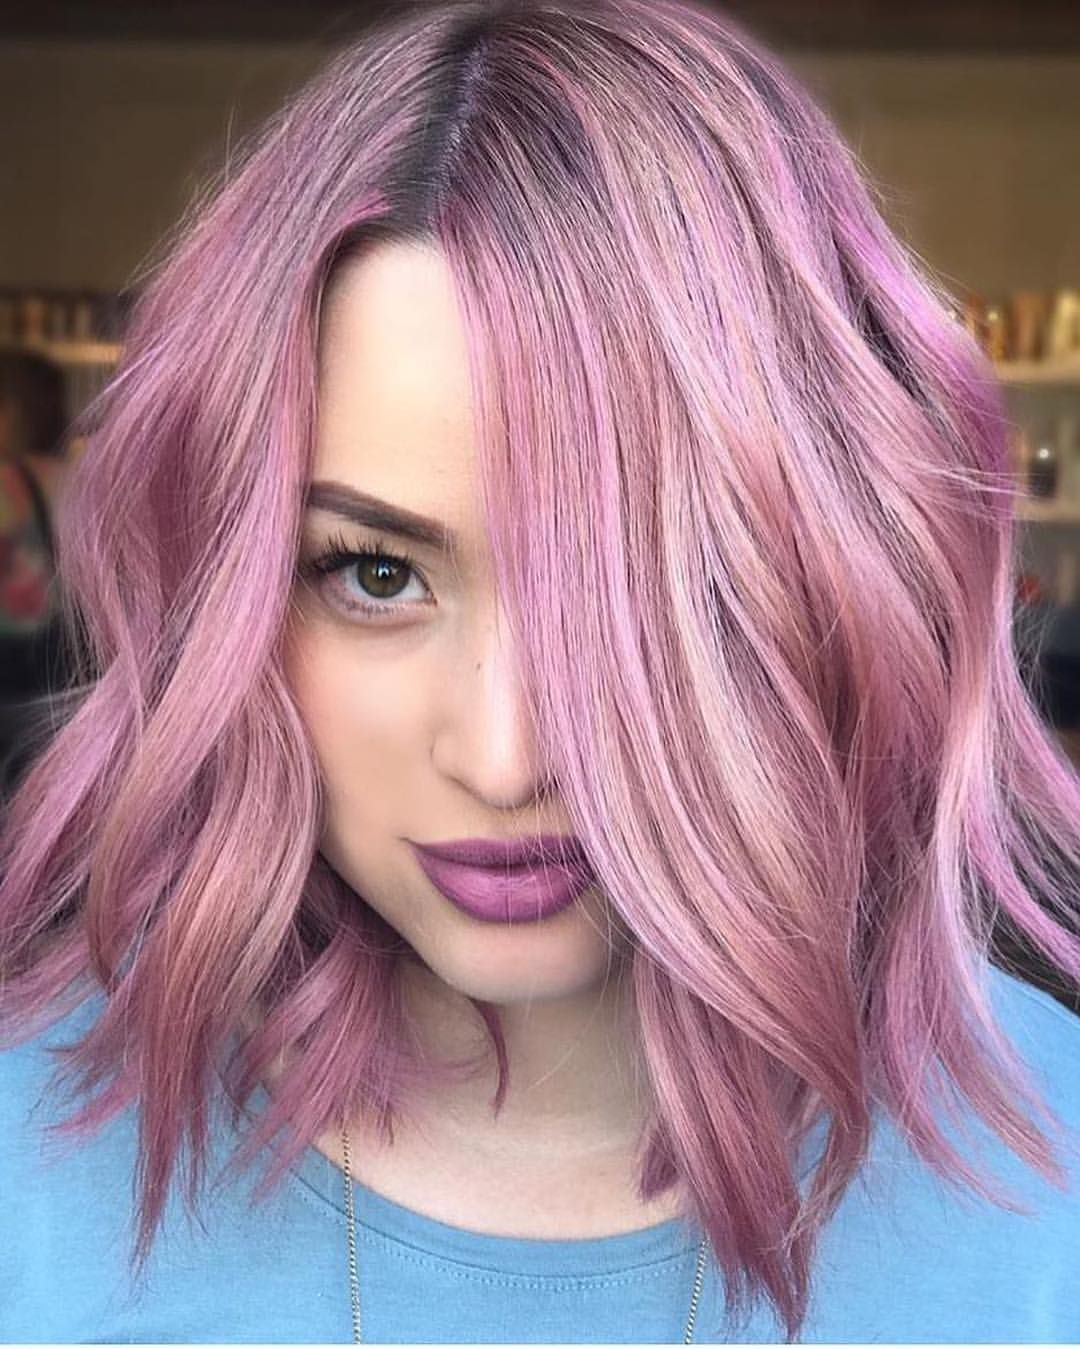 Pin by katie oelschlager on hair inspo pinterest